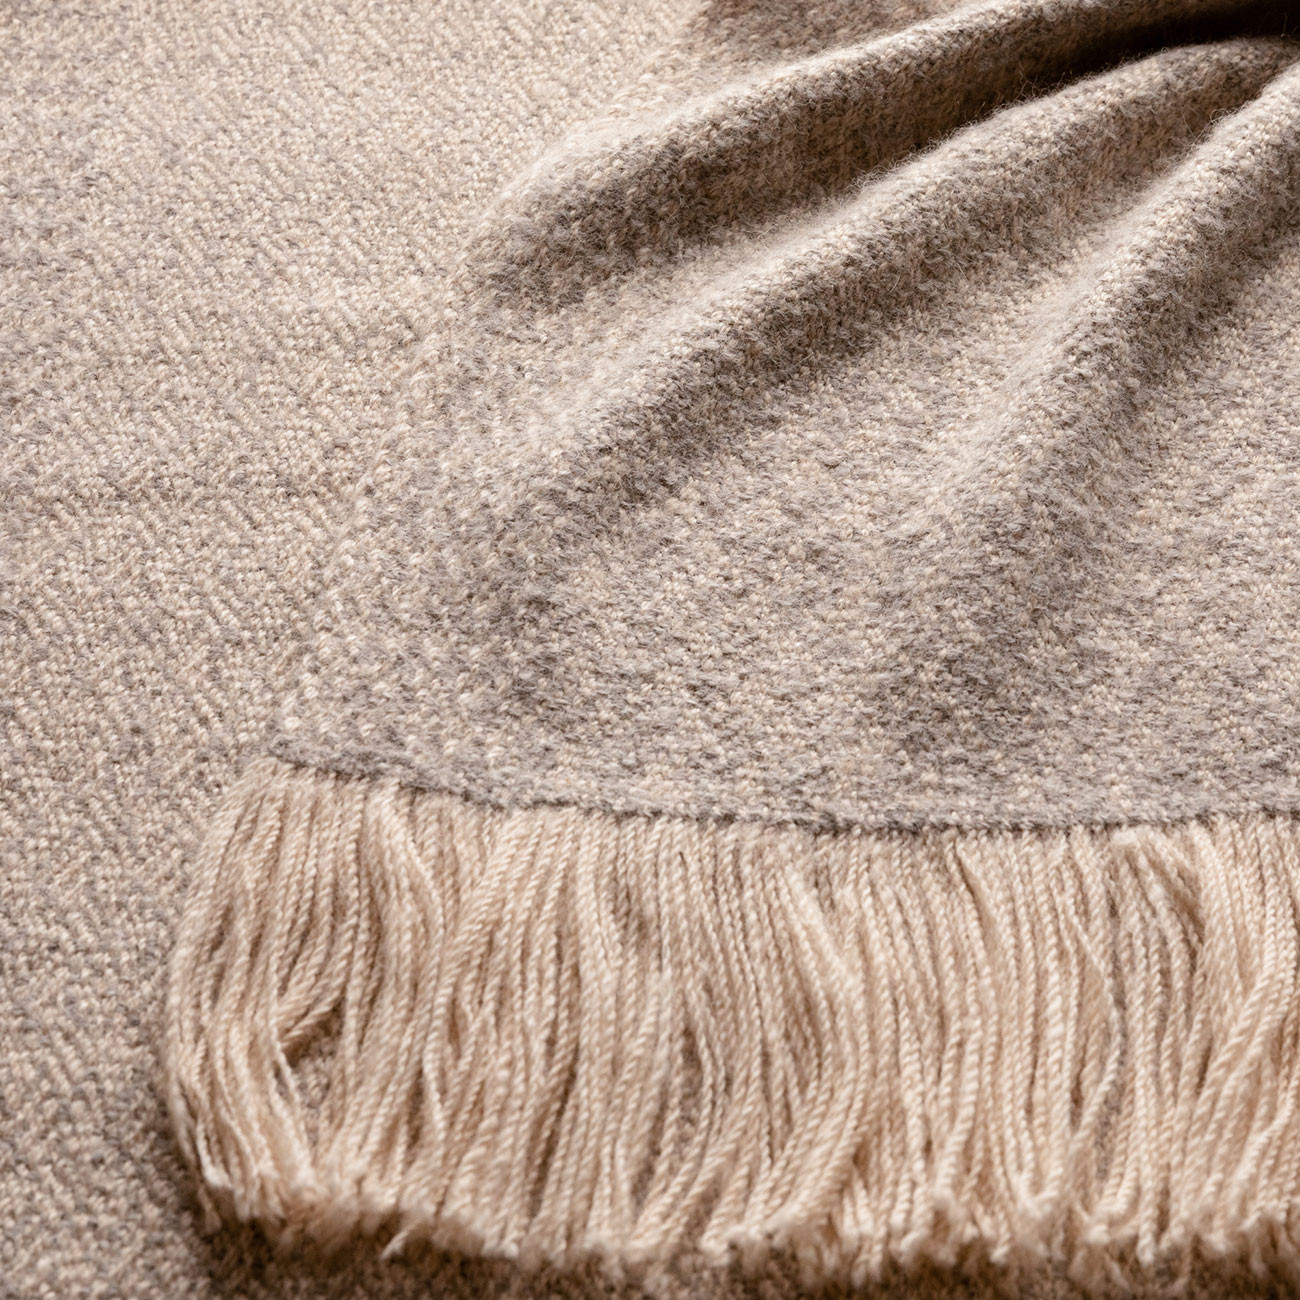 Handwoven Pinebark Wide Scarf - Natural Light Grey and Cream Alpaca - 1